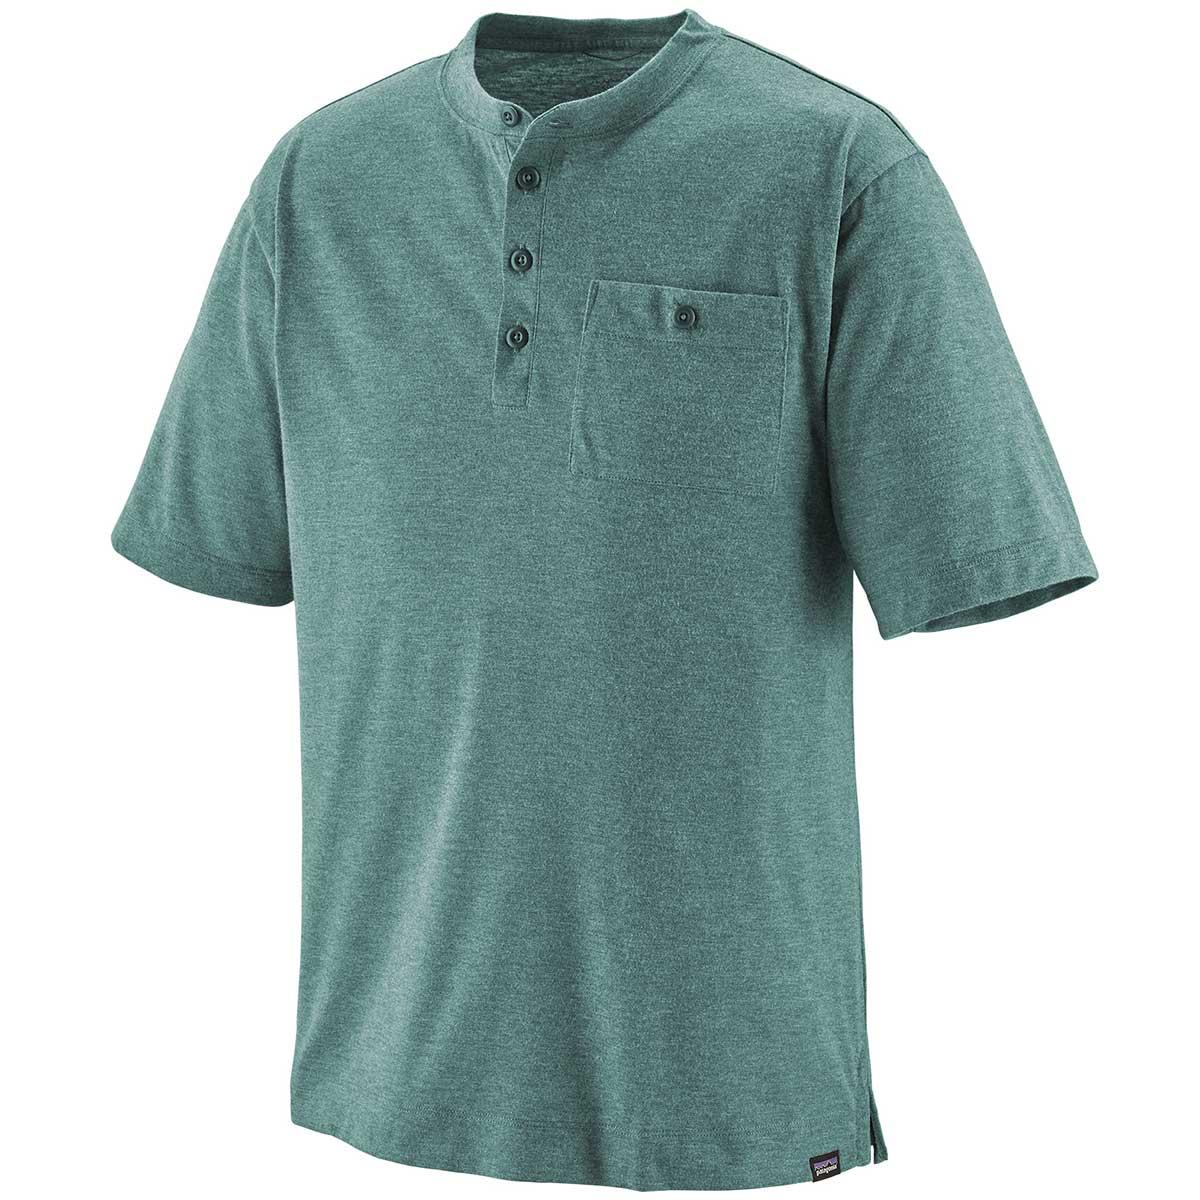 Patagonia men's Capilene Cool Daily Trail short-sleeve mountain bike henley, in Tasmanian Teal